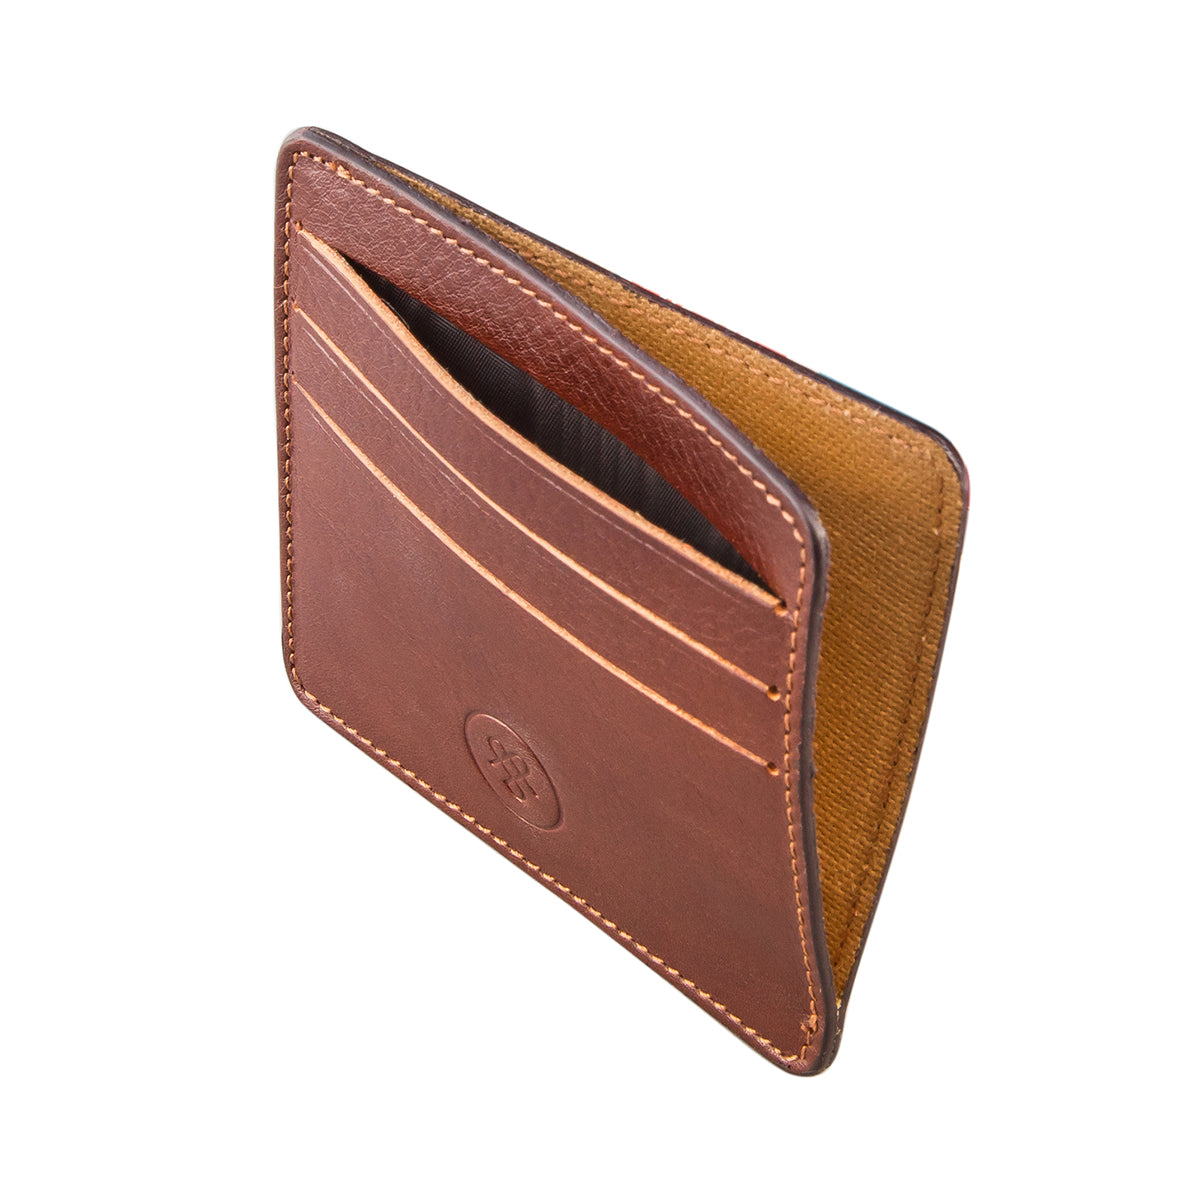 Image 3 of the 'Marco' Chestnut Veg-Tanned Leather Wallet